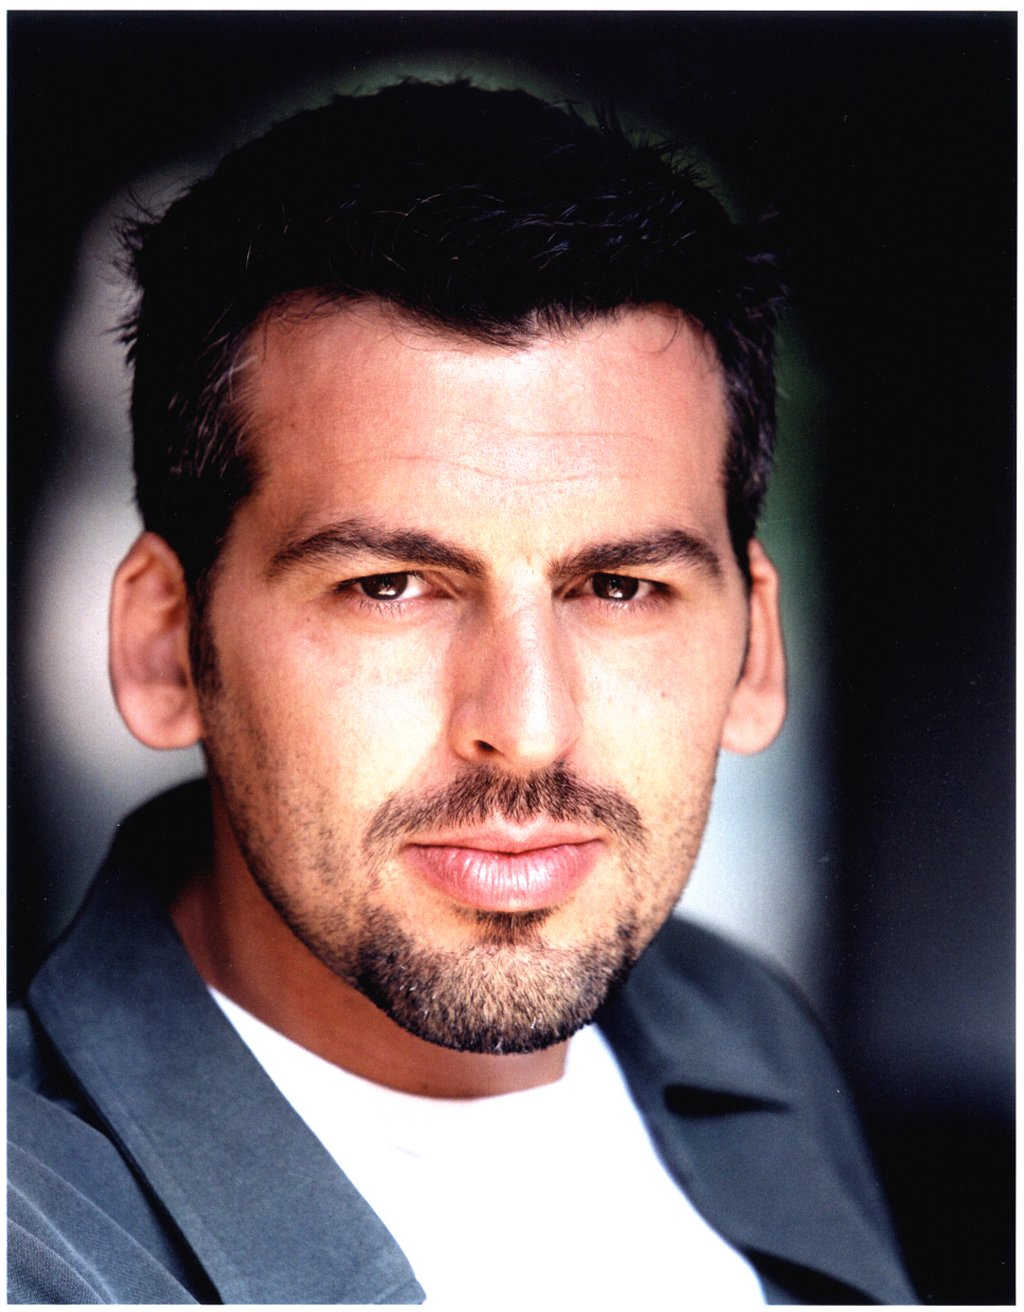 Poze Oded Fehr - Actor - Poza 11 din 20 - CineMagia.ro